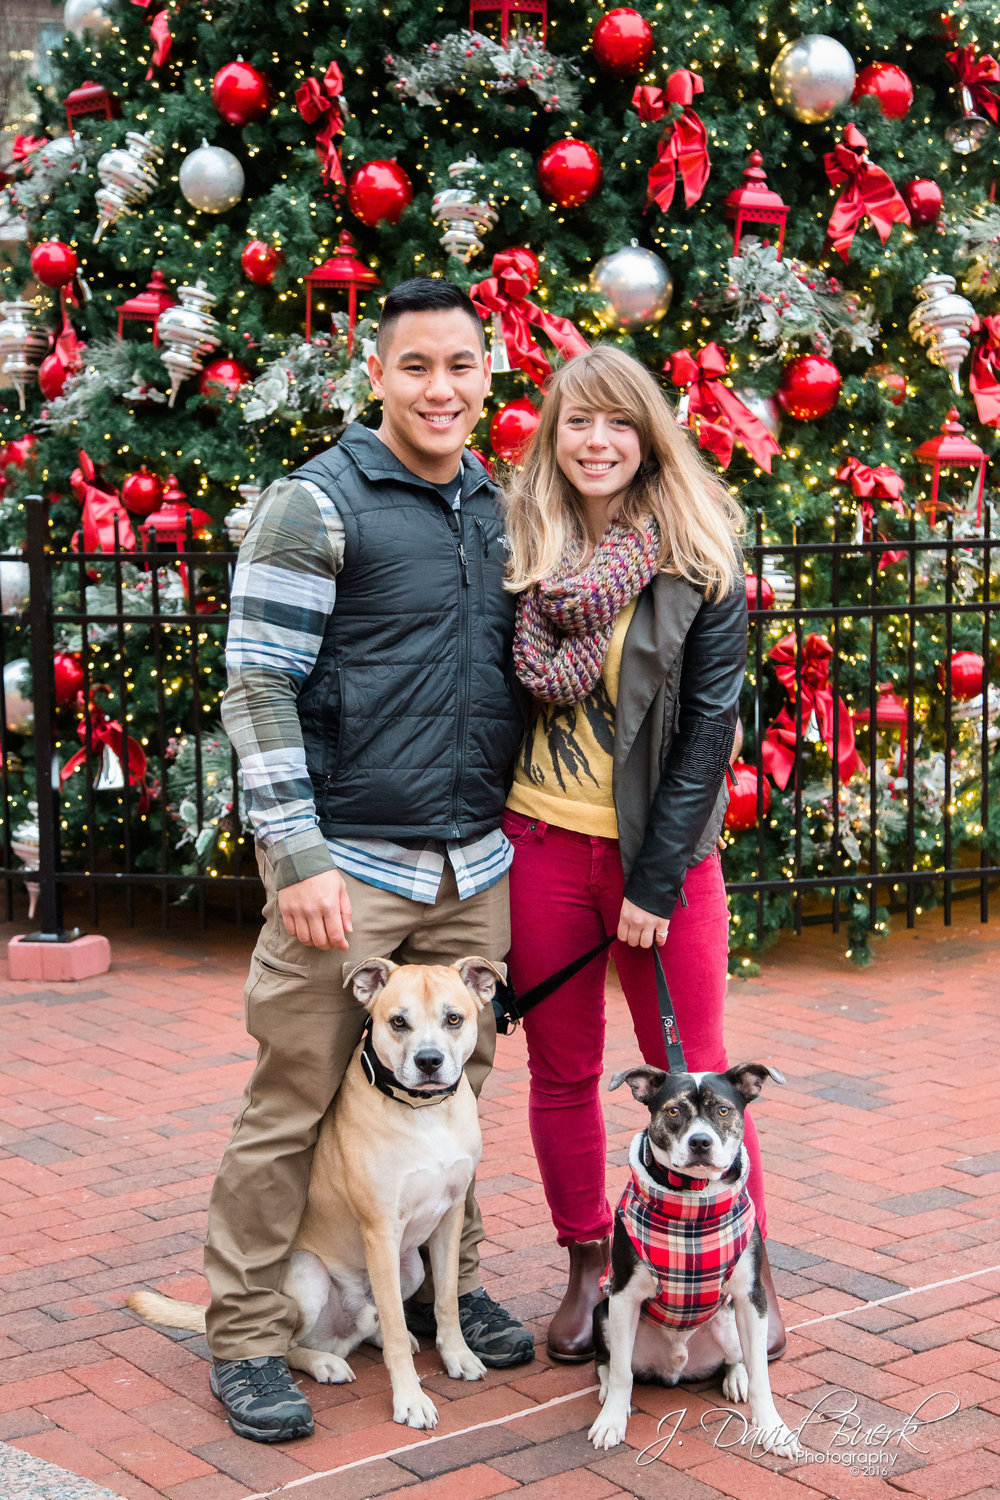 Leo and Chelsea and their two dogs, upon getting engaged at the skating rink at Reston Town Center, Reston, Virginia.  She said yes!